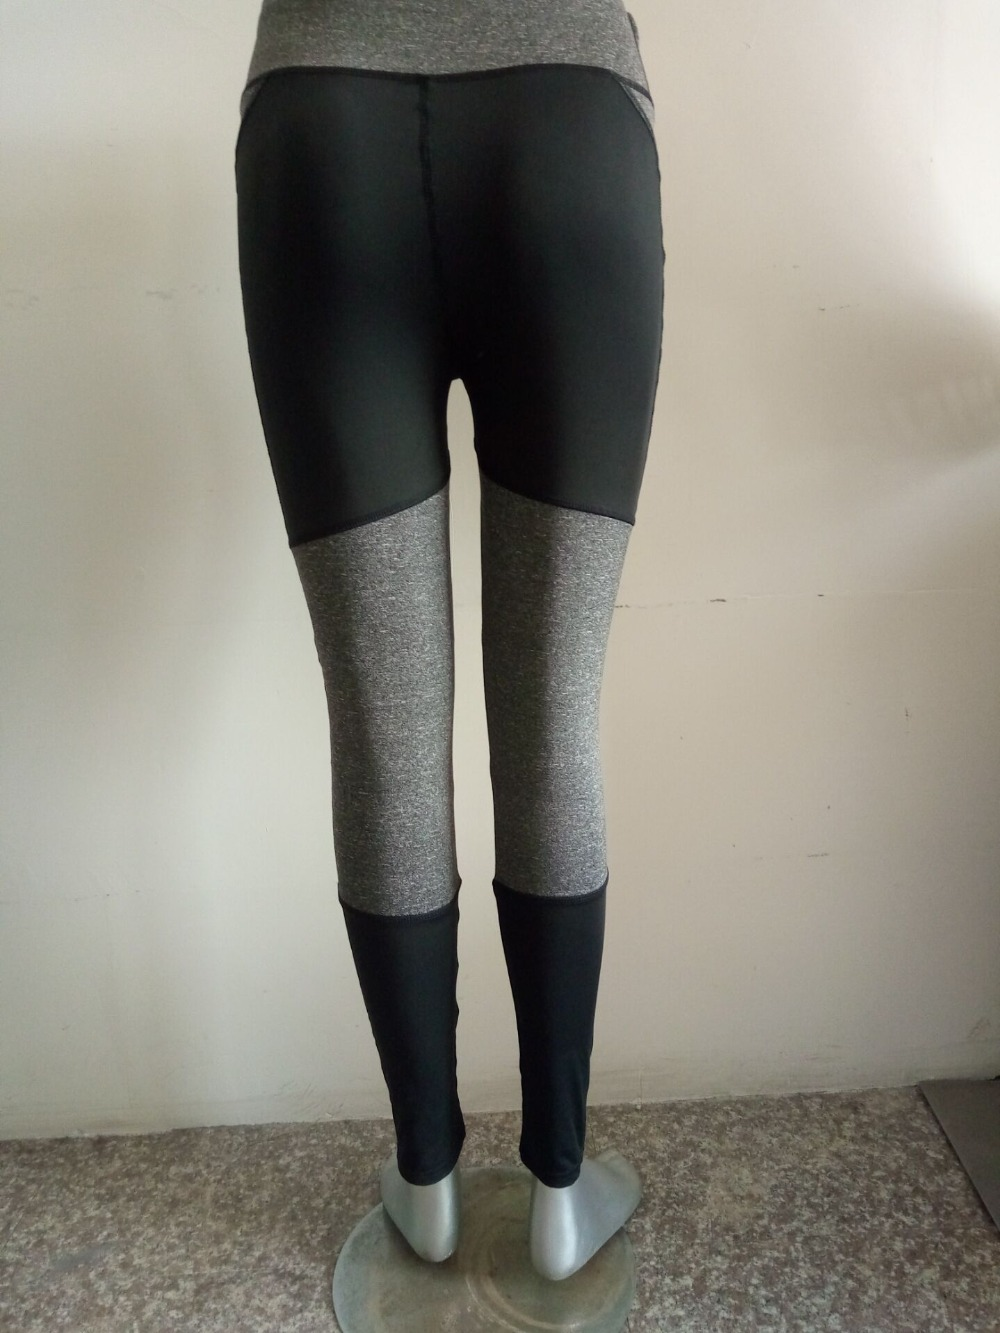 Kvinnor Fitness Leggings Svart Casual Leggins Workout Byxor Mesh - Damkläder - Foto 6